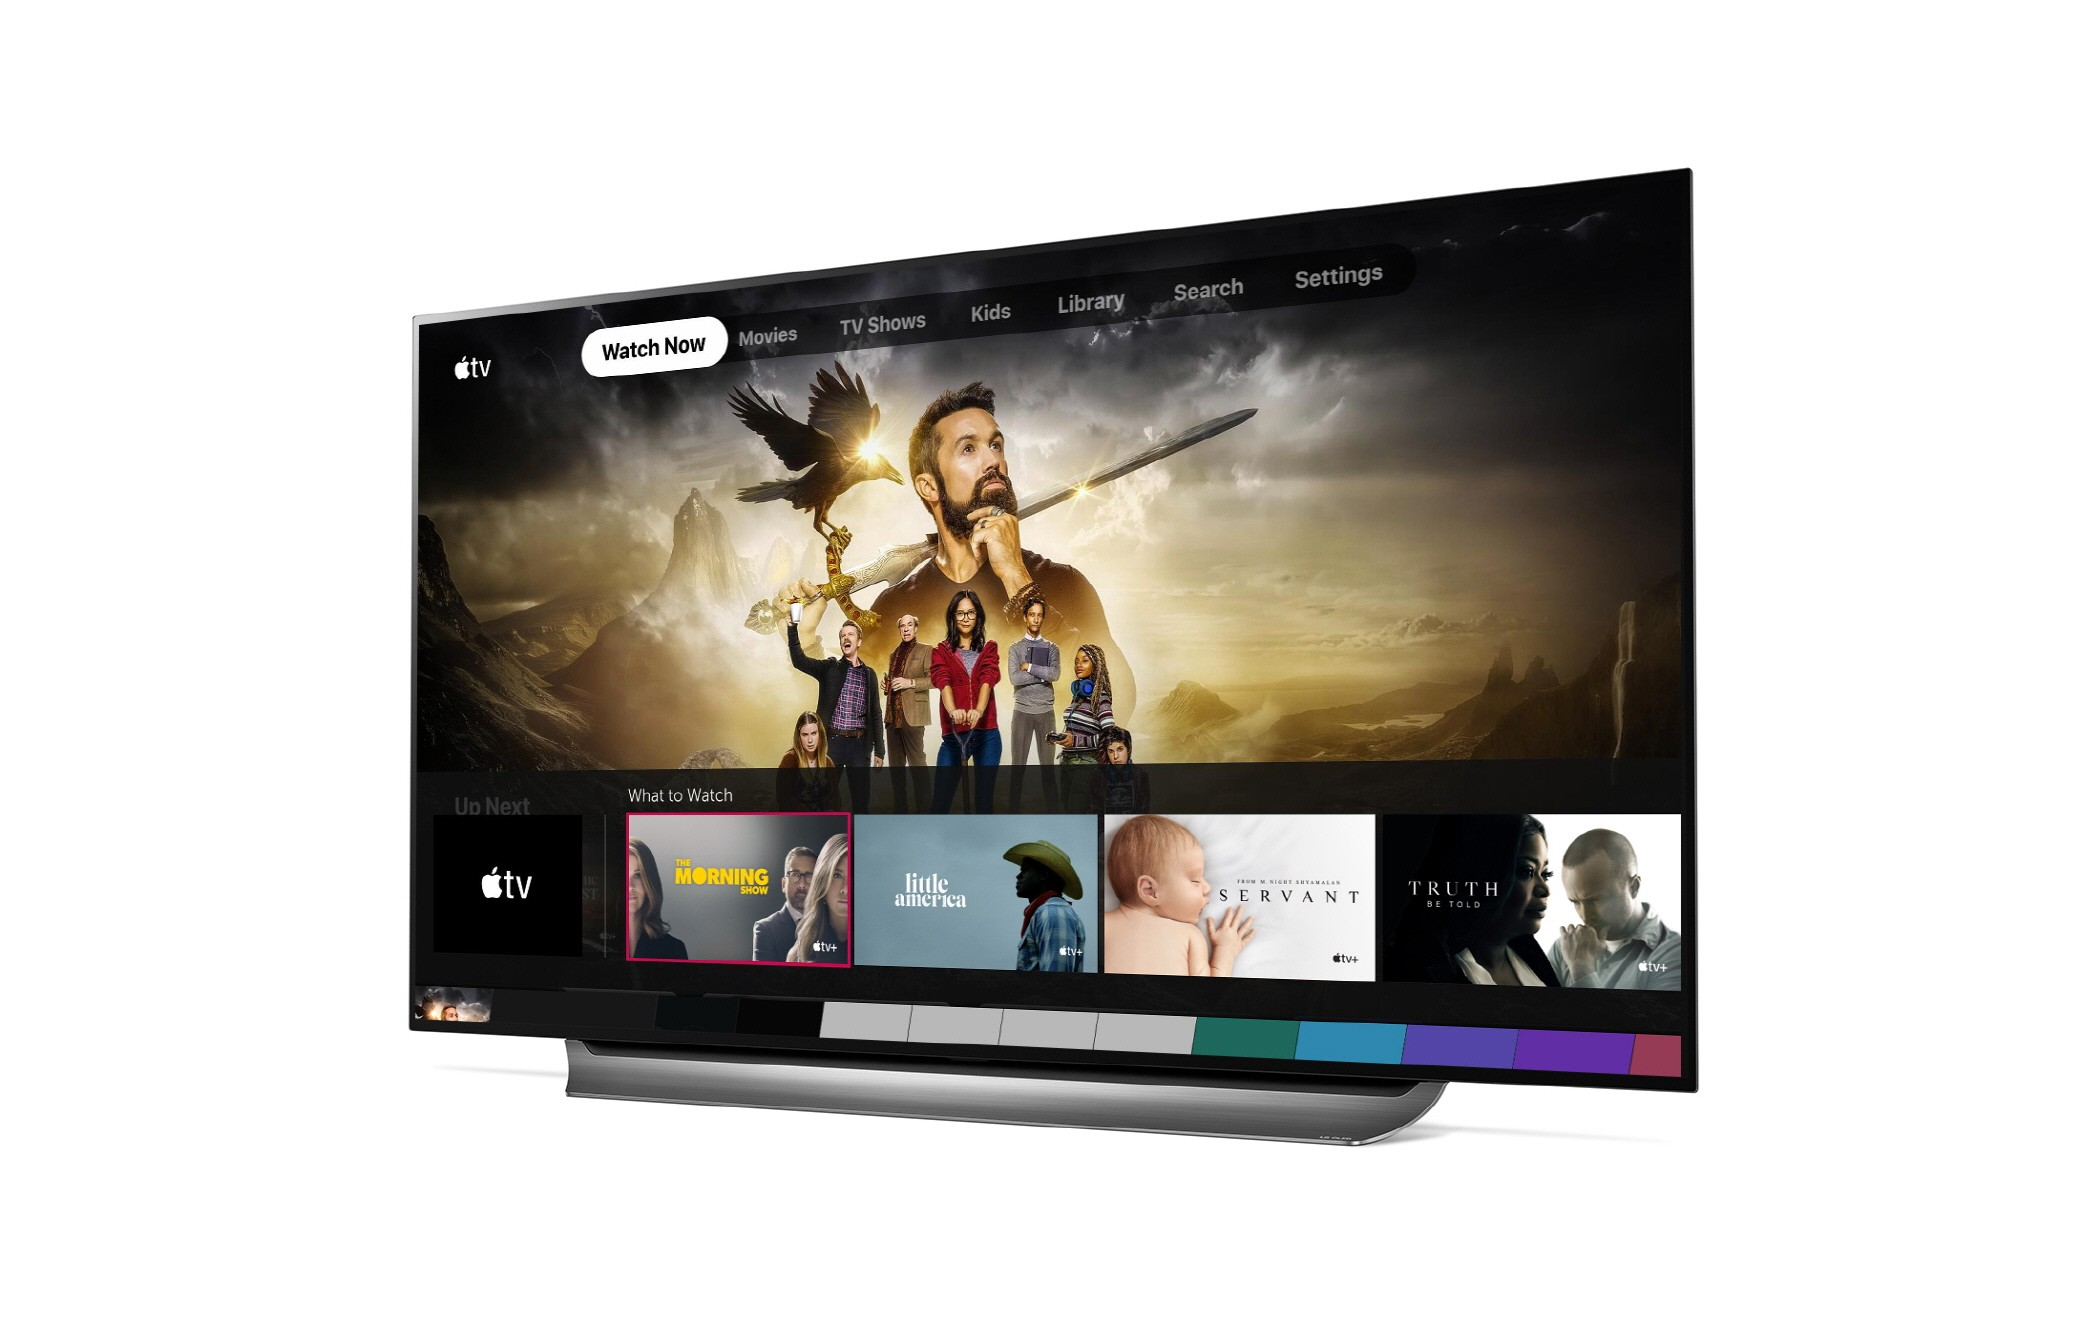 Right side view of an LG TV using the Apple TV app's user interface to navigate TV shows and films